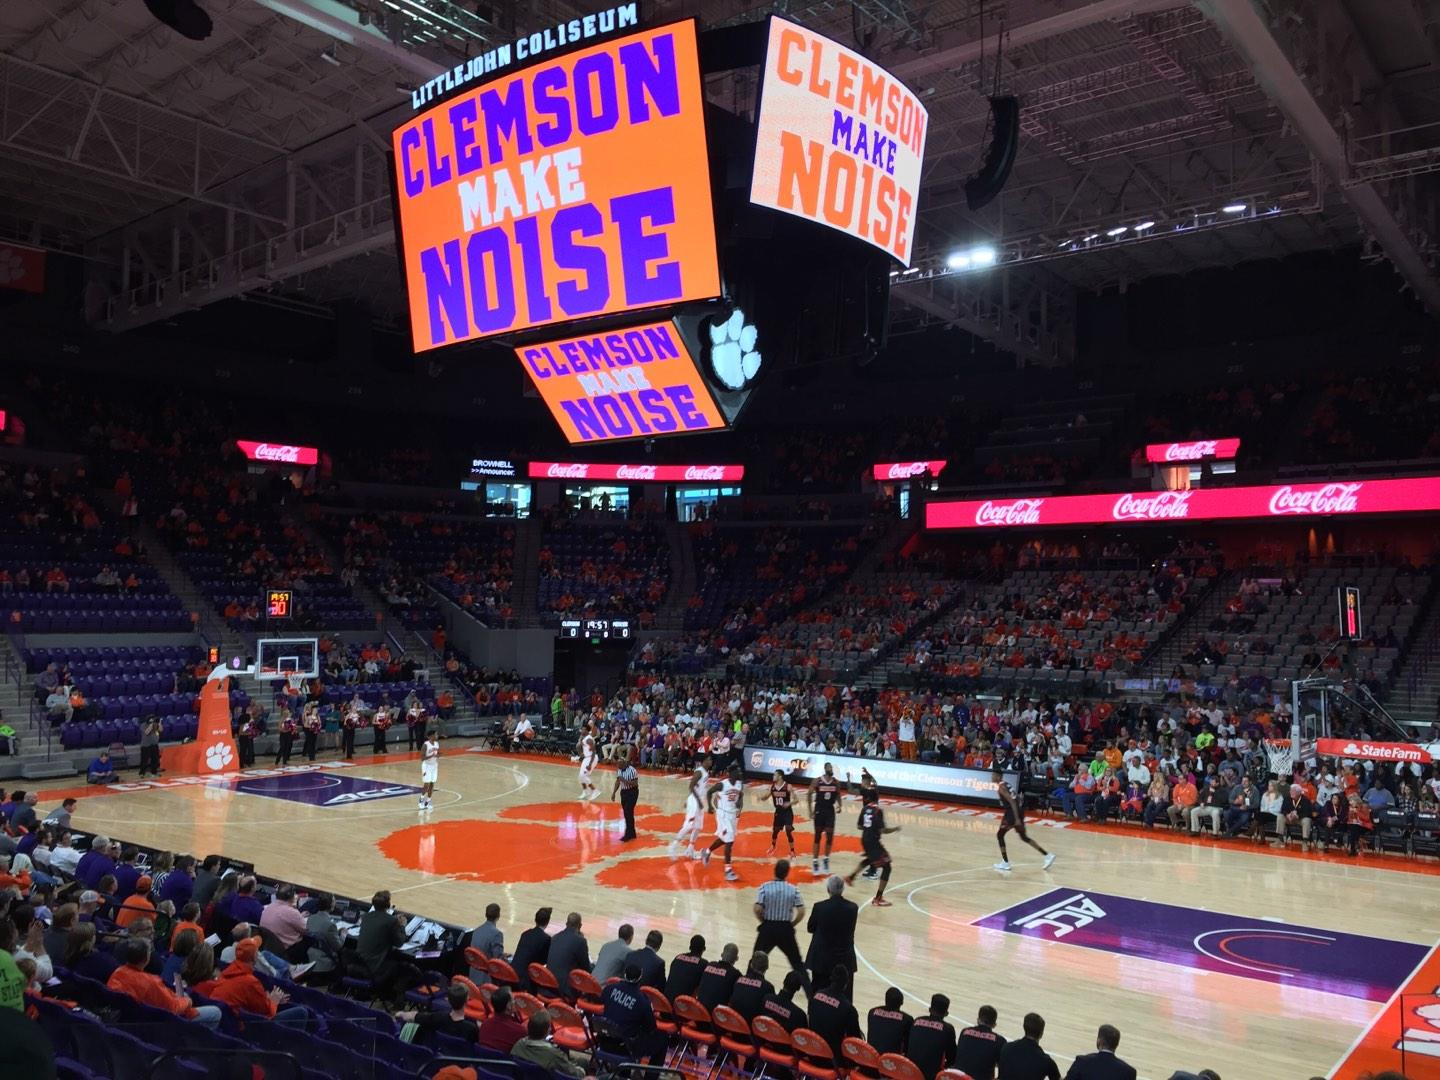 Littlejohn Coliseum Section 116 Row M Seat 7